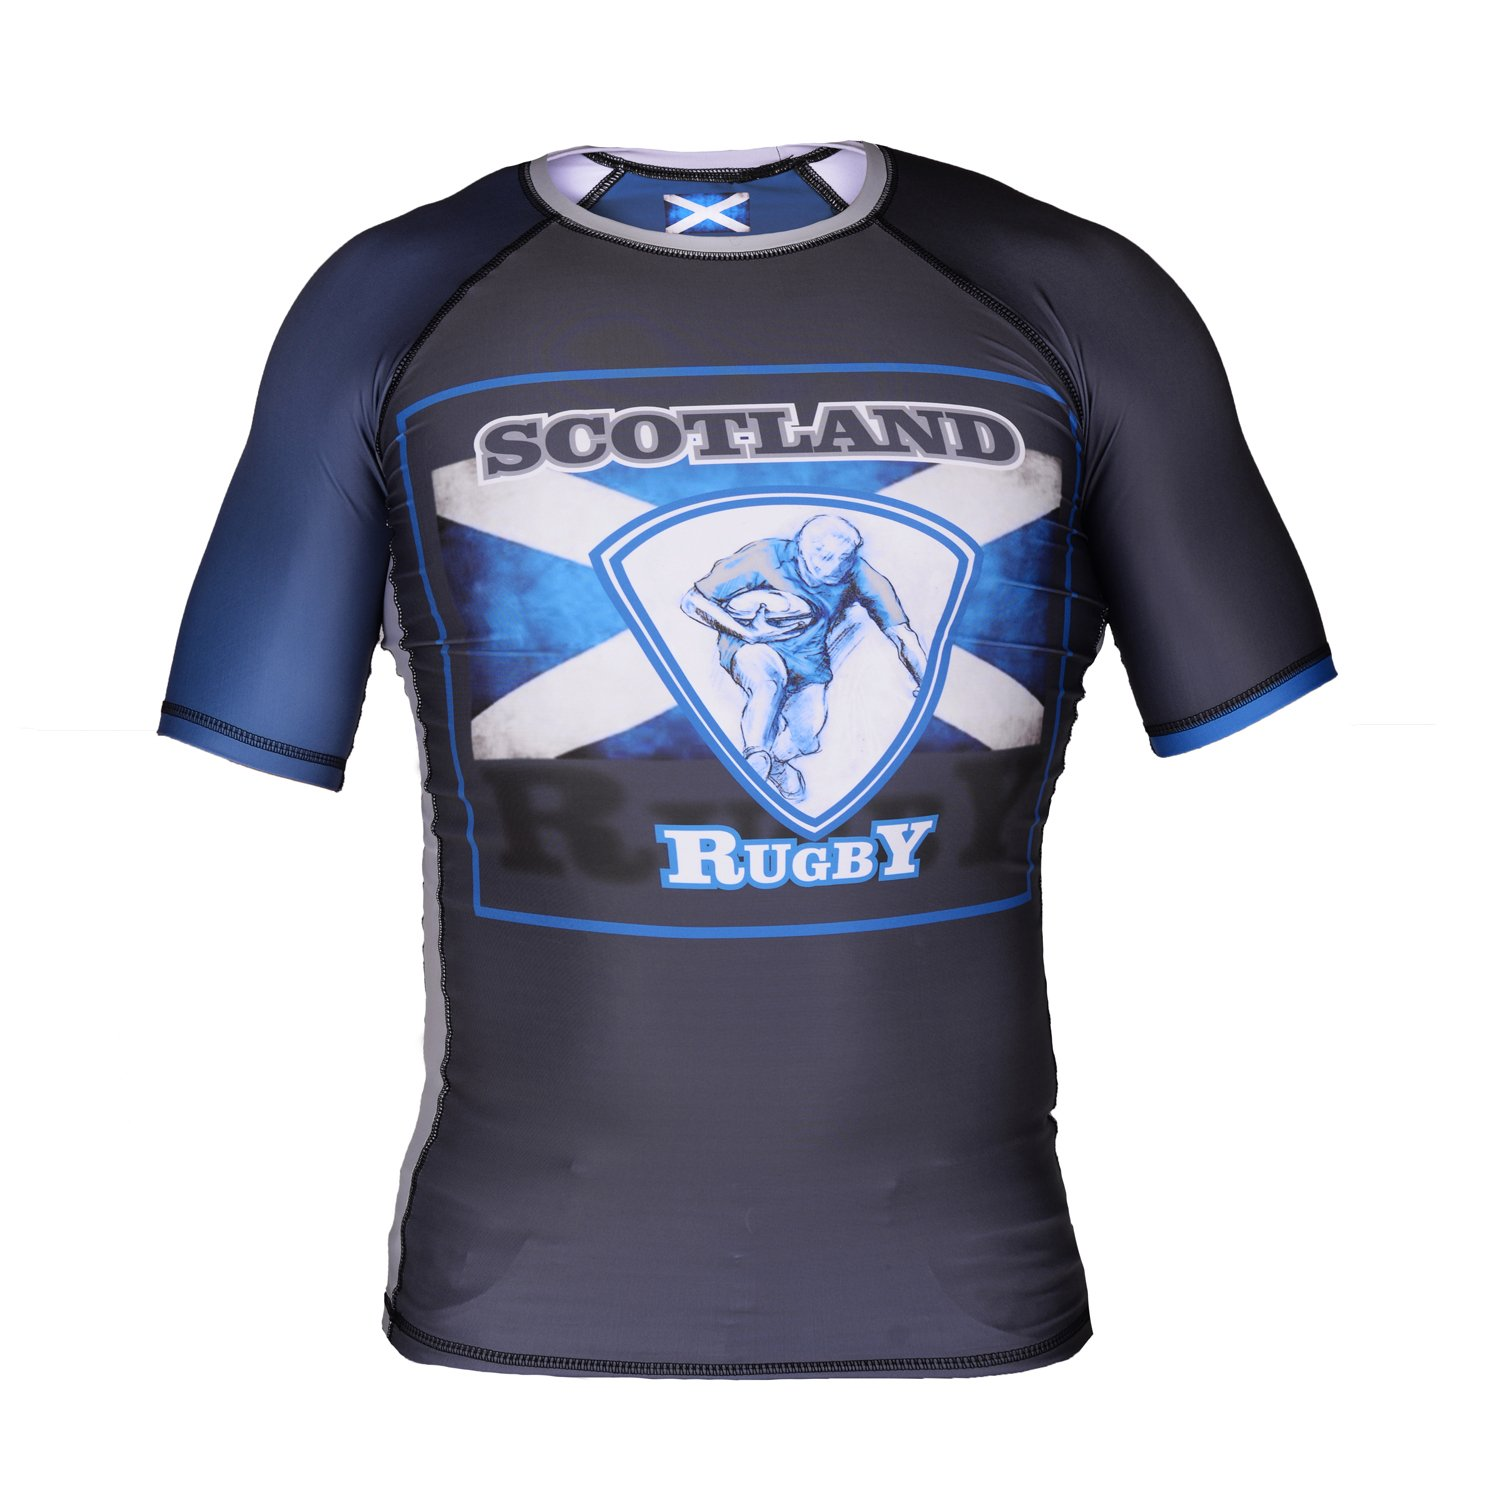 Image of Street Fighter Short Sleeve Rash Guard SCOTLAND